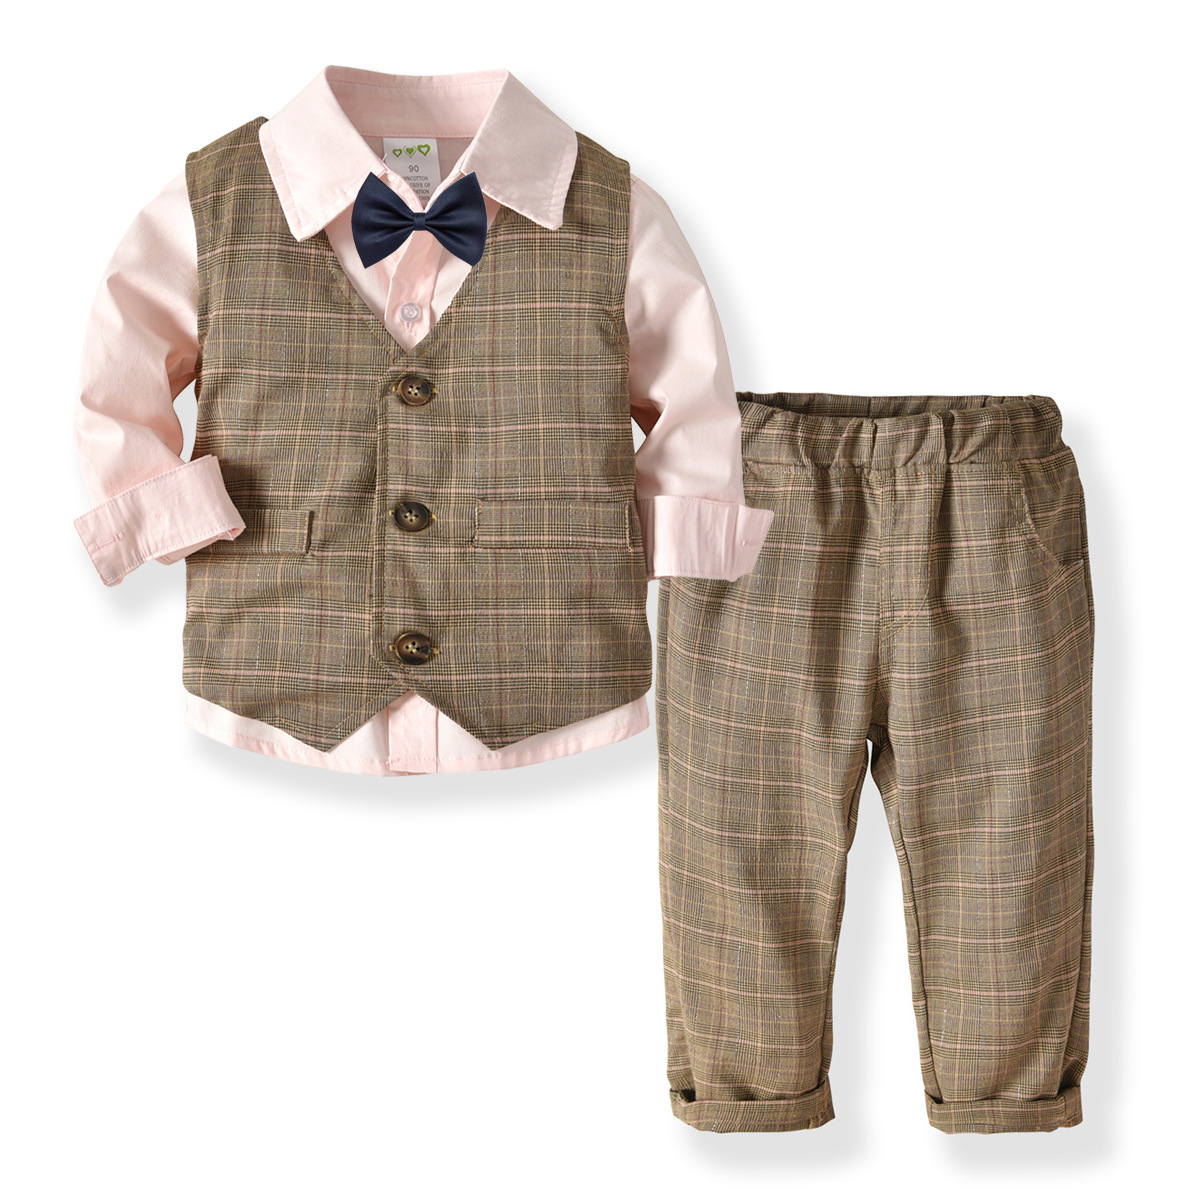 Kids Clothes Children Clothing Cotton 2019 spring and autumn new boy long sleeved shirt vest trousers bow tie gentleman suit in Clothing Sets from Mother Kids